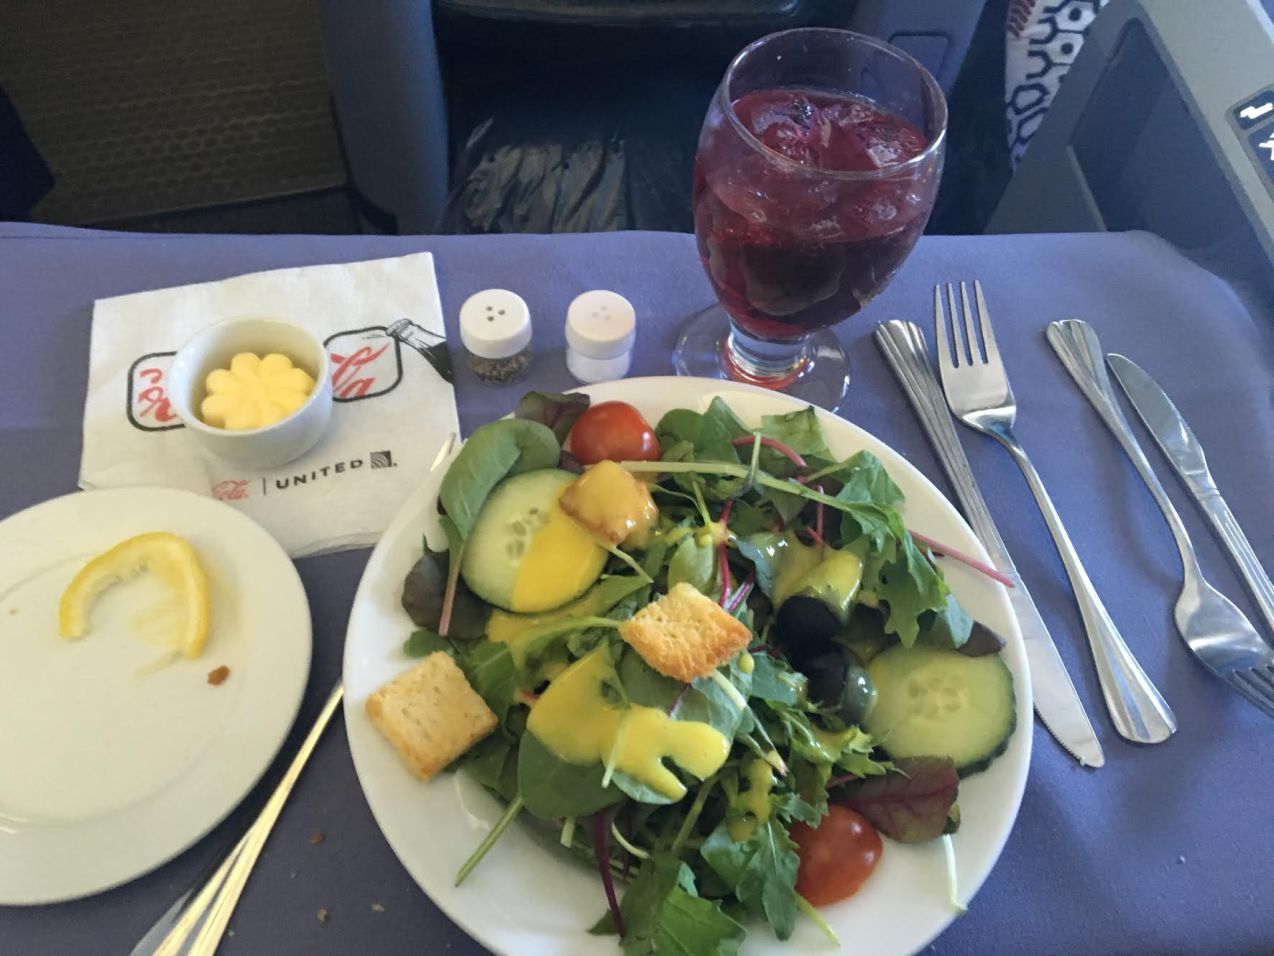 United Airlines Widebody Aircraft Fleet Boeing 767 400ER Business FirstPolaris Business Cabin meal services salad was slightly less impressive